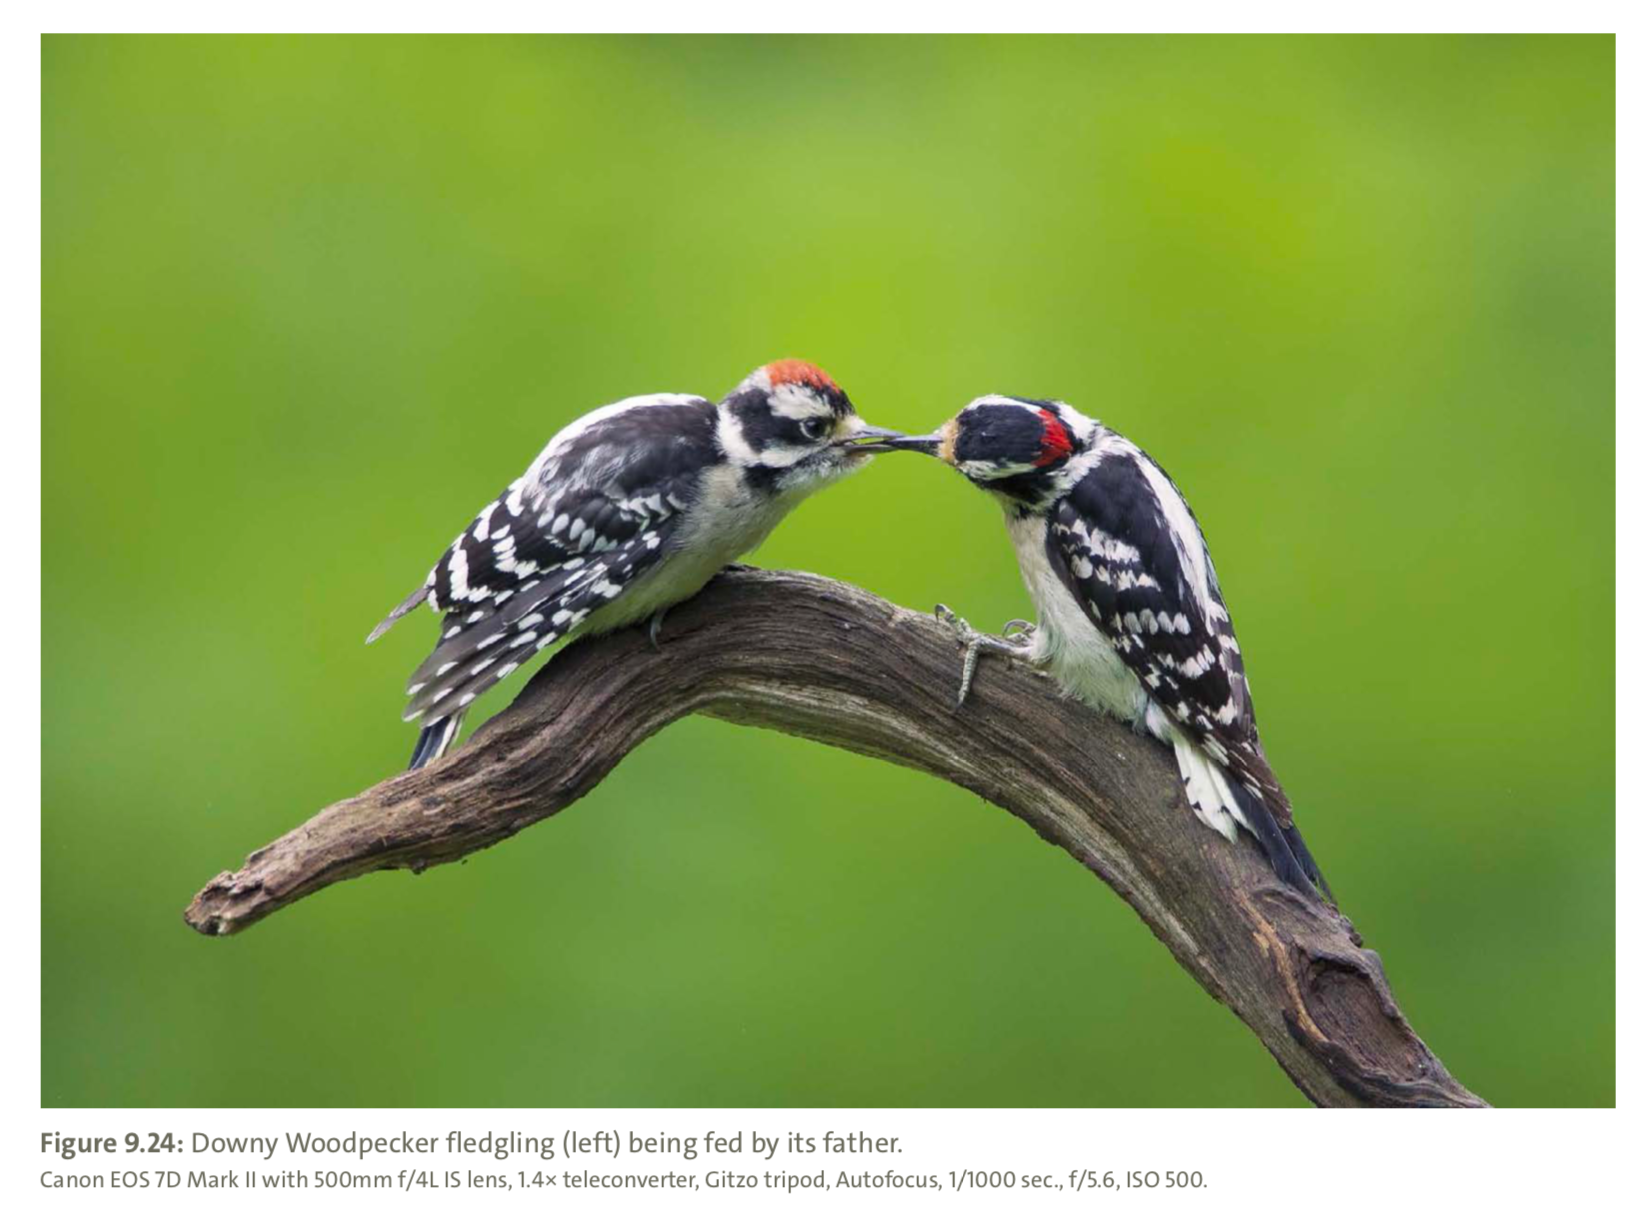 Figure 9.24 from Mastering Bird Photography  Photo: Marie Read